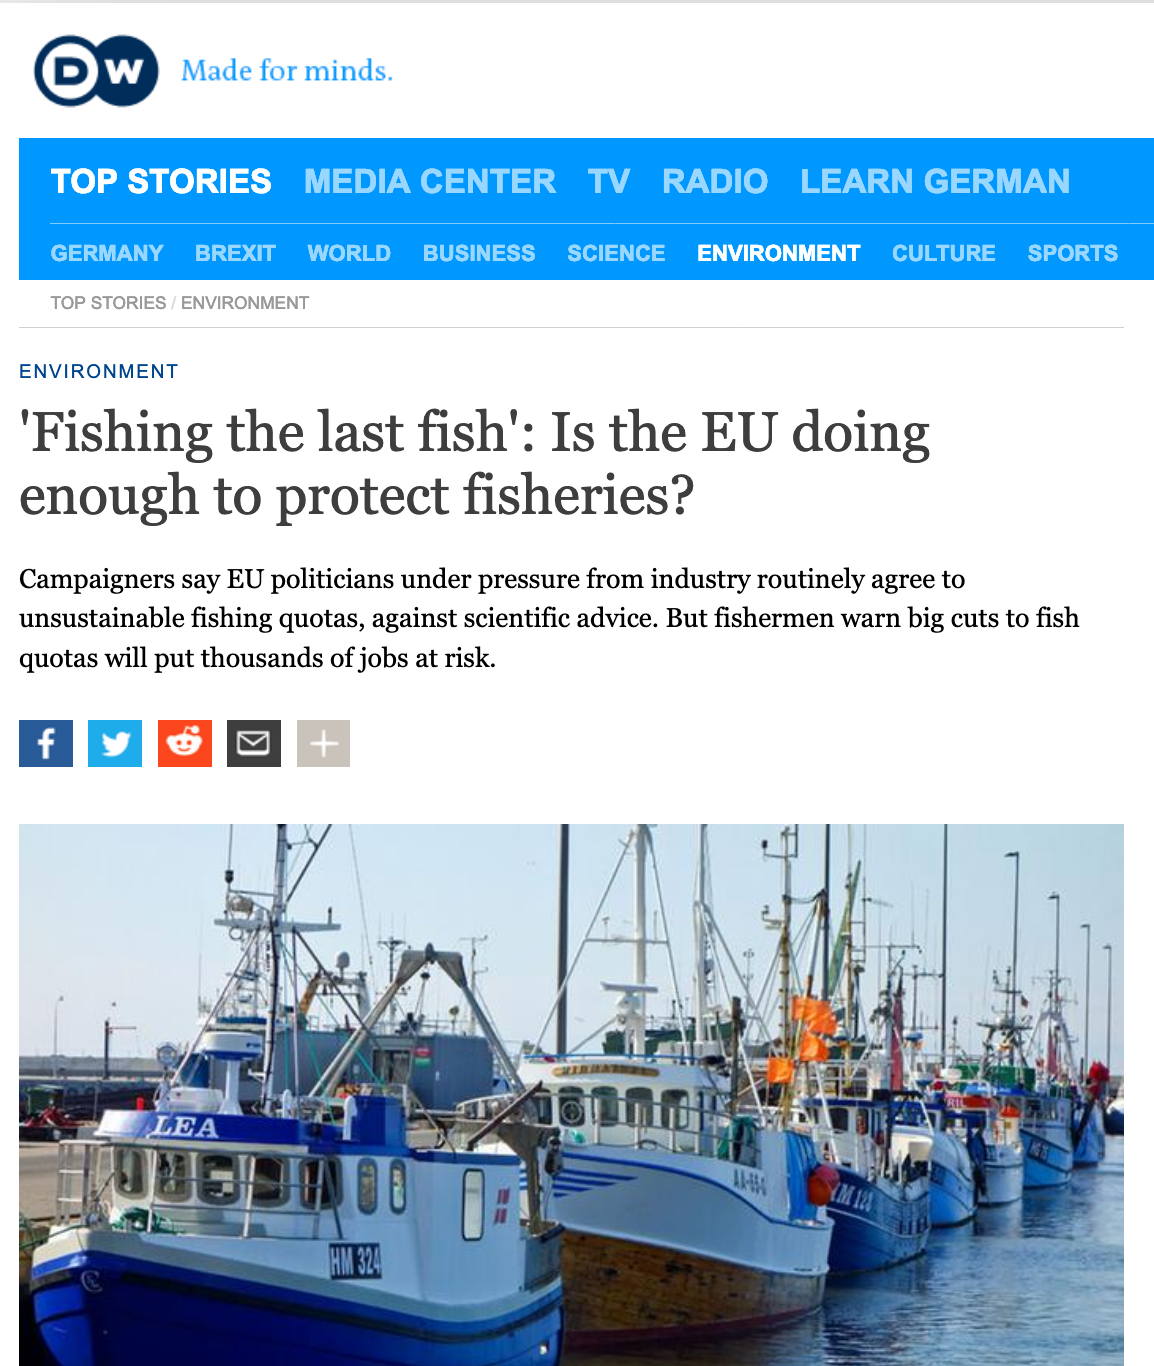 'Fishing the last fish': Is the EU doing enough to protect fisheries?